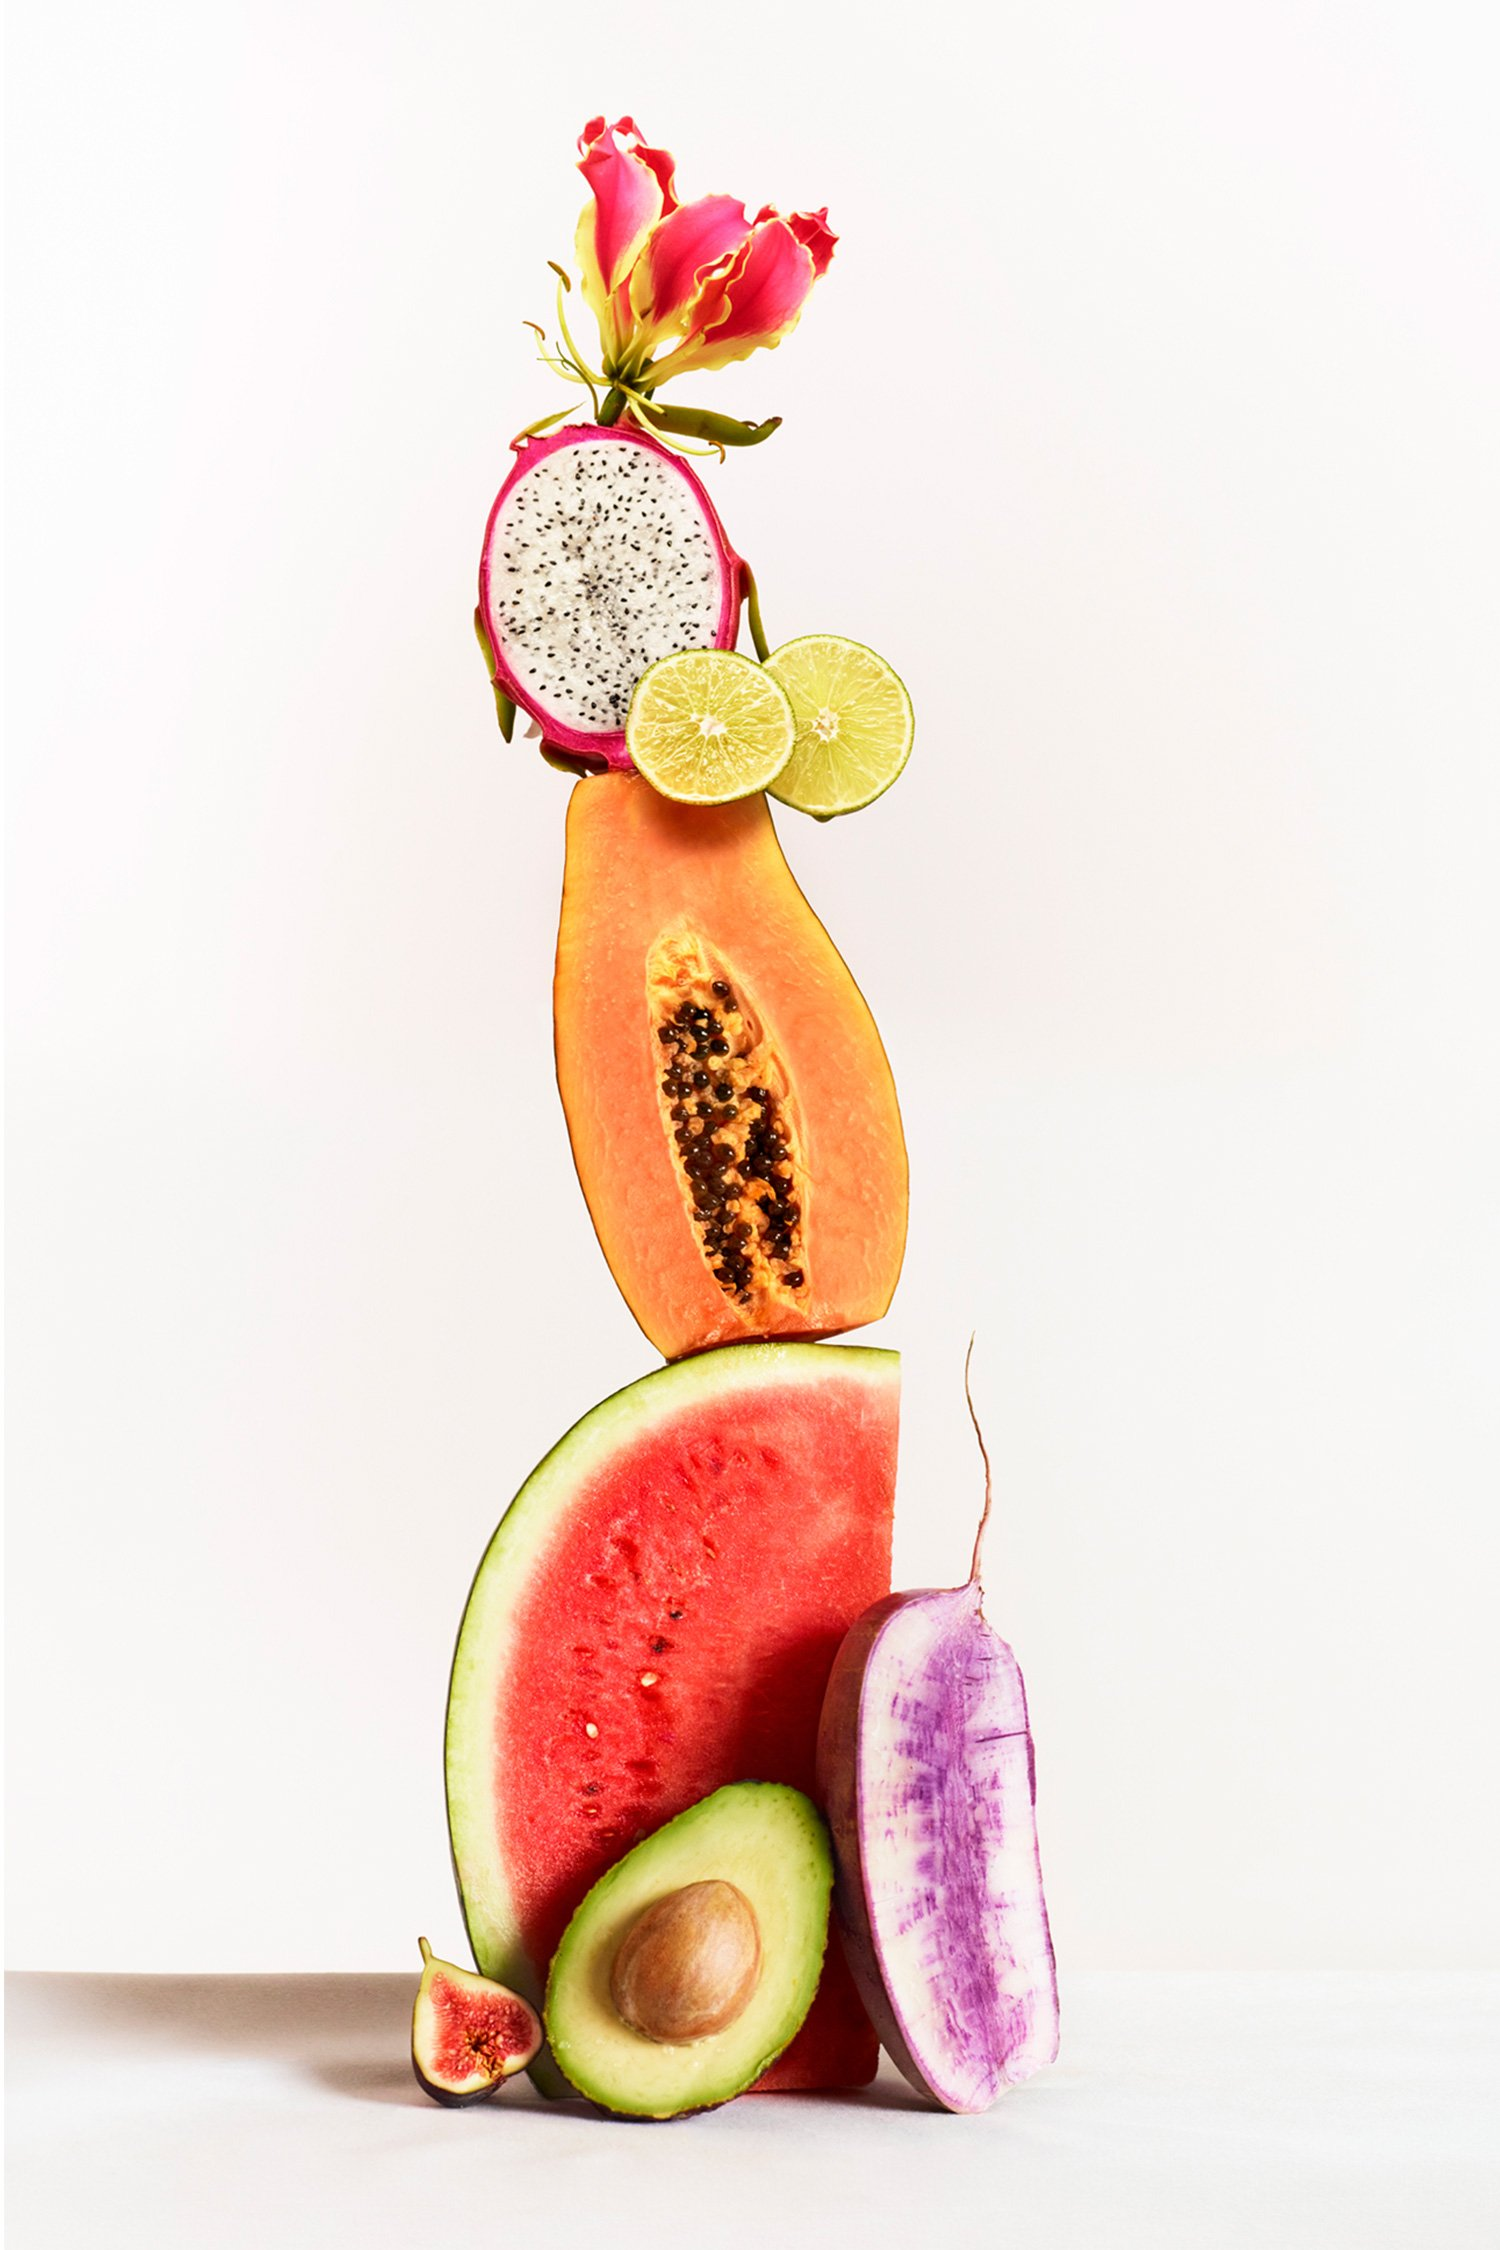 Stacked fruits and vegetables for Sakara campaign, Art direction by RoAndCo